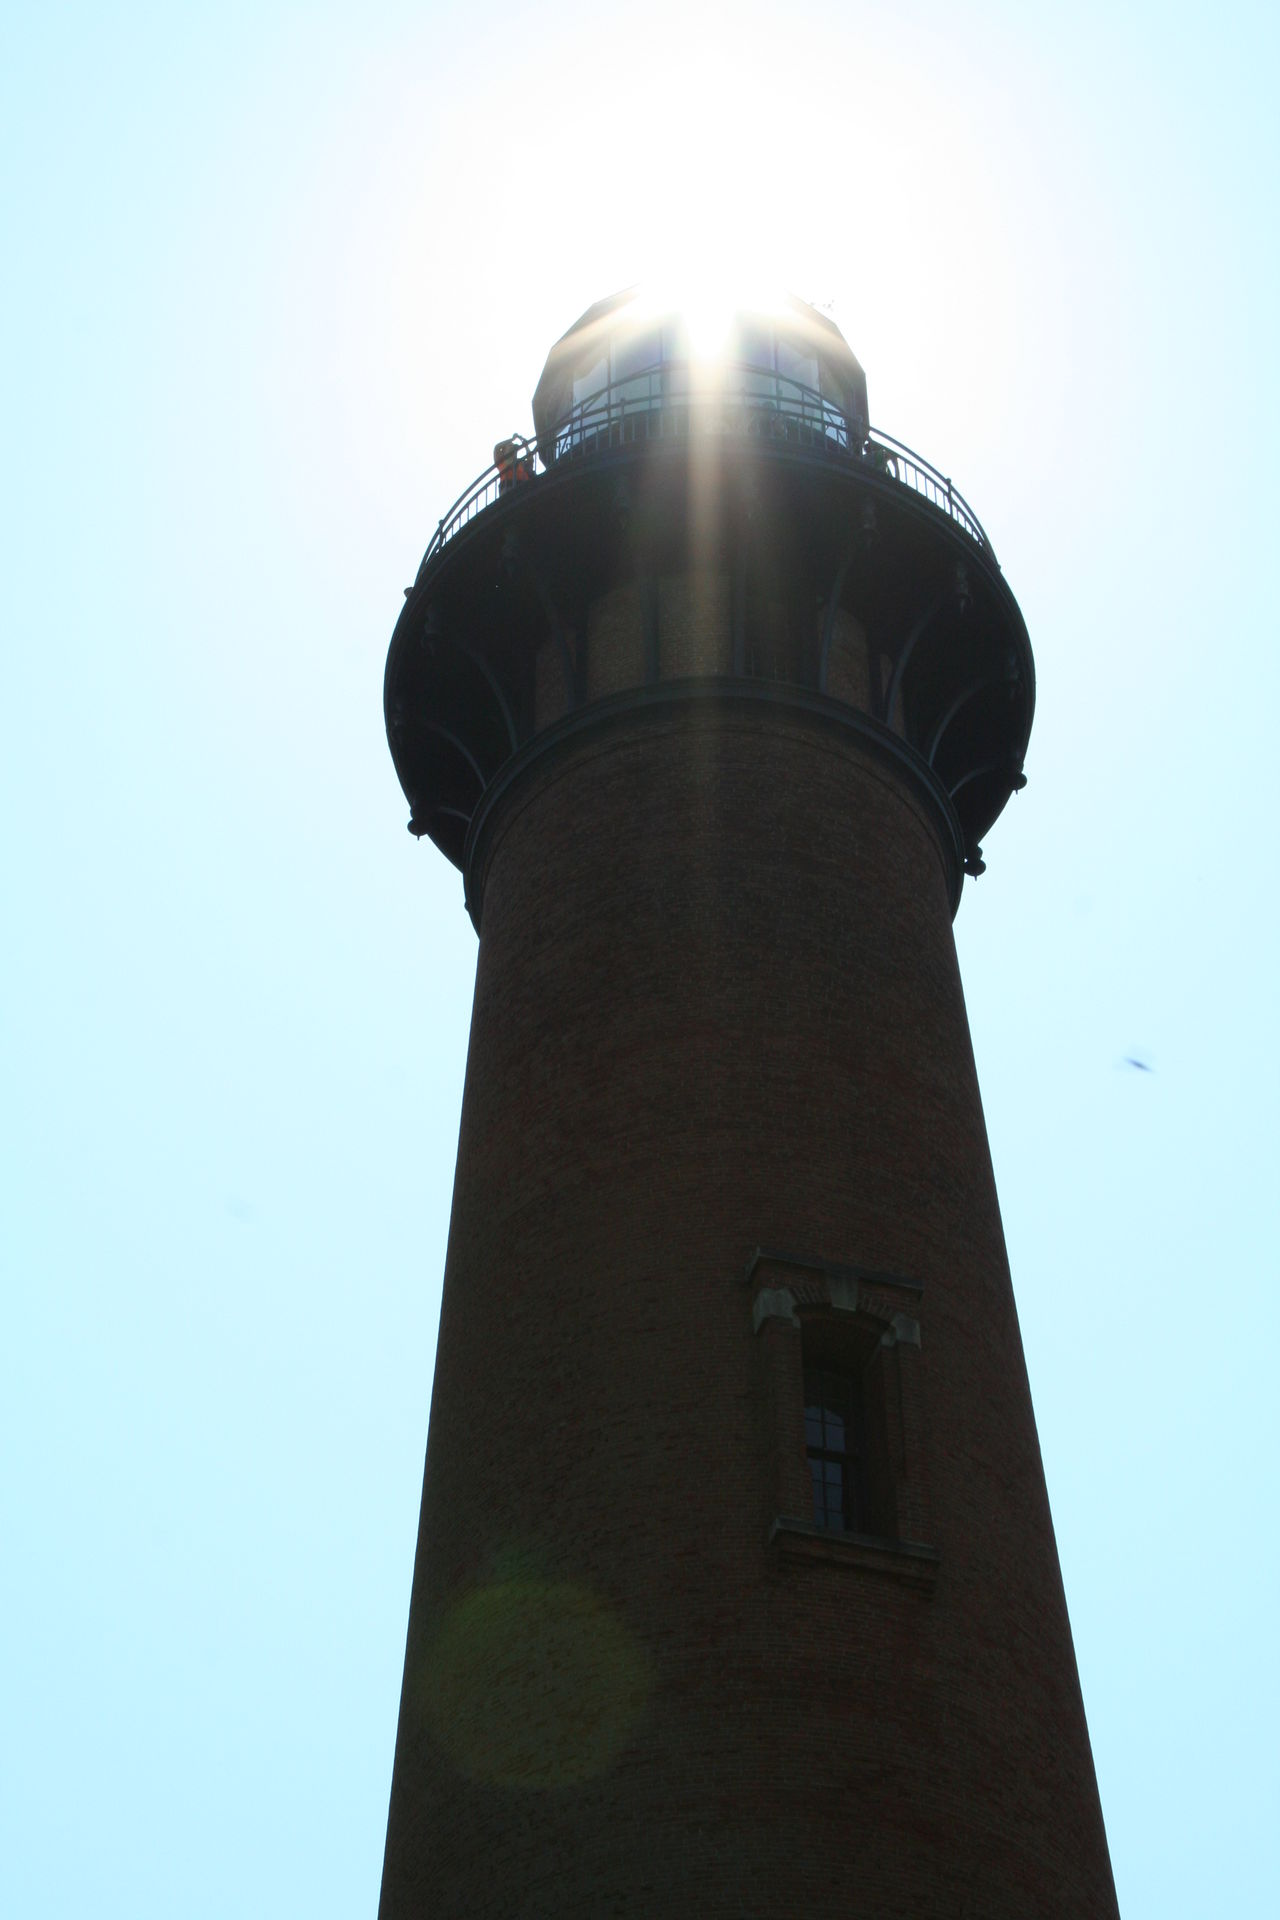 Loved this angle...waited for the sun to get directly over the lighthouse and snapped it as if the sun was the glow from the top of the lighthouse Architecture Built Structure Clear Sky Currituck Beach Lighthouse Lighthouse Lighthouse OBX Outer Banks NC Sun Tower